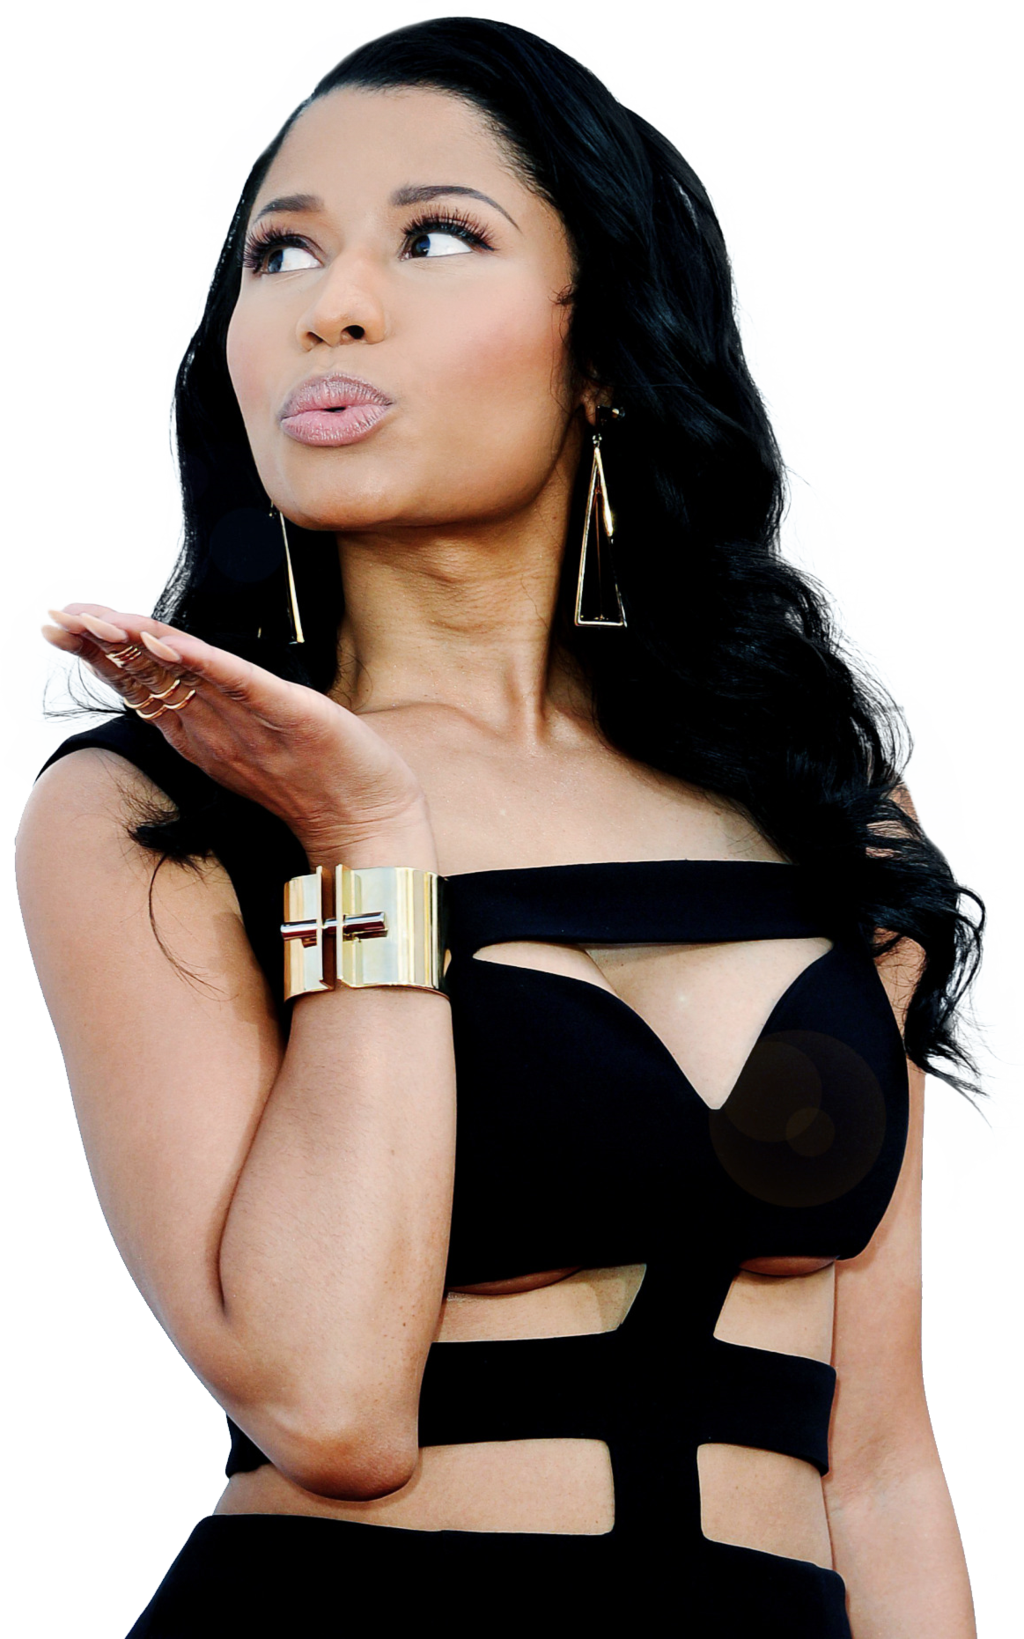 Download Nicki Minaj PNG Image For Designing Projects.